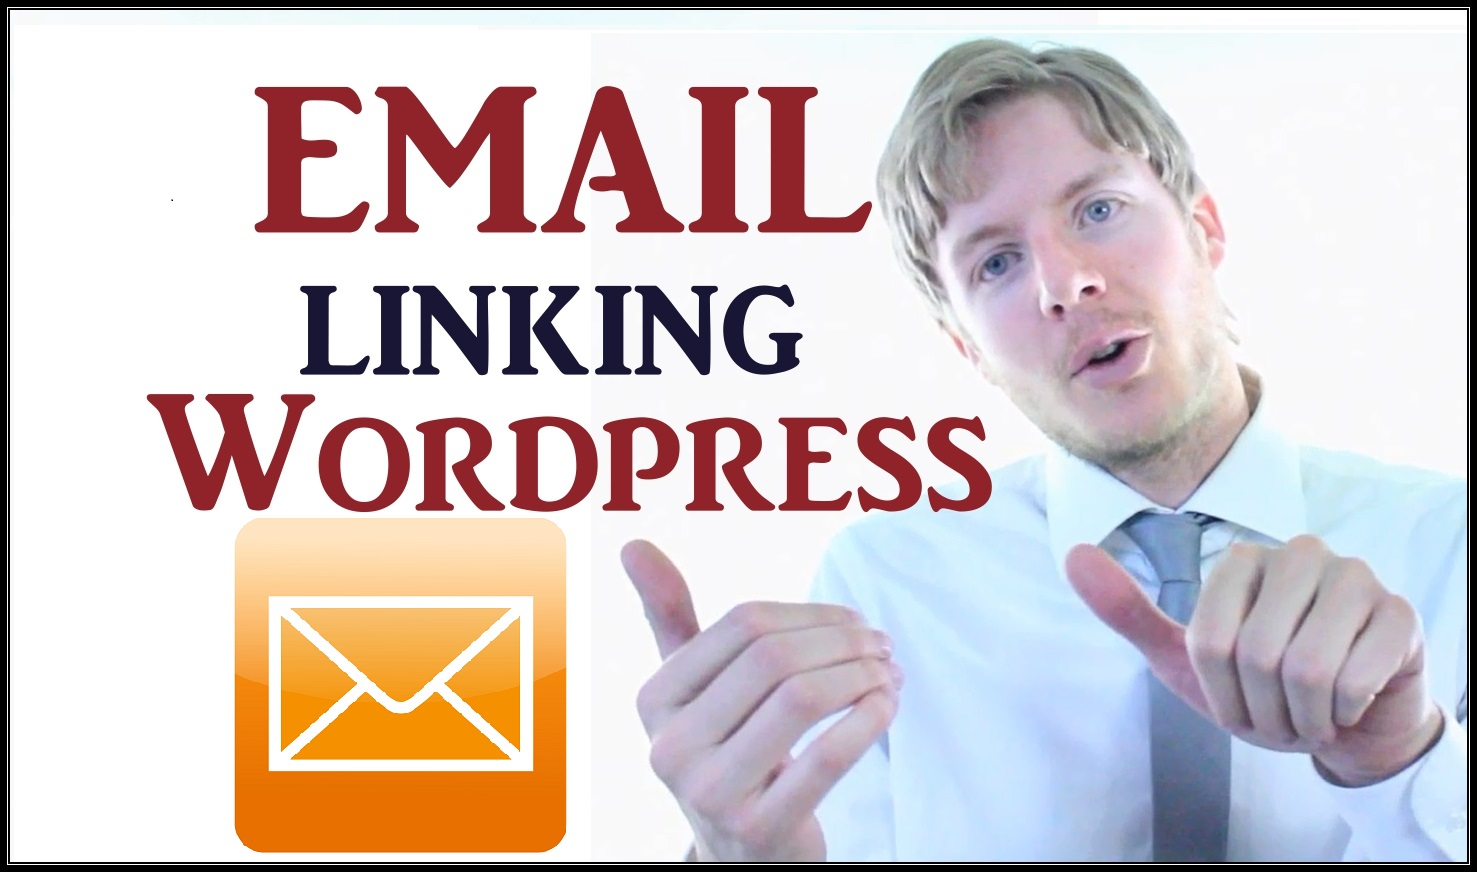 Make your email address to a link on wordpress